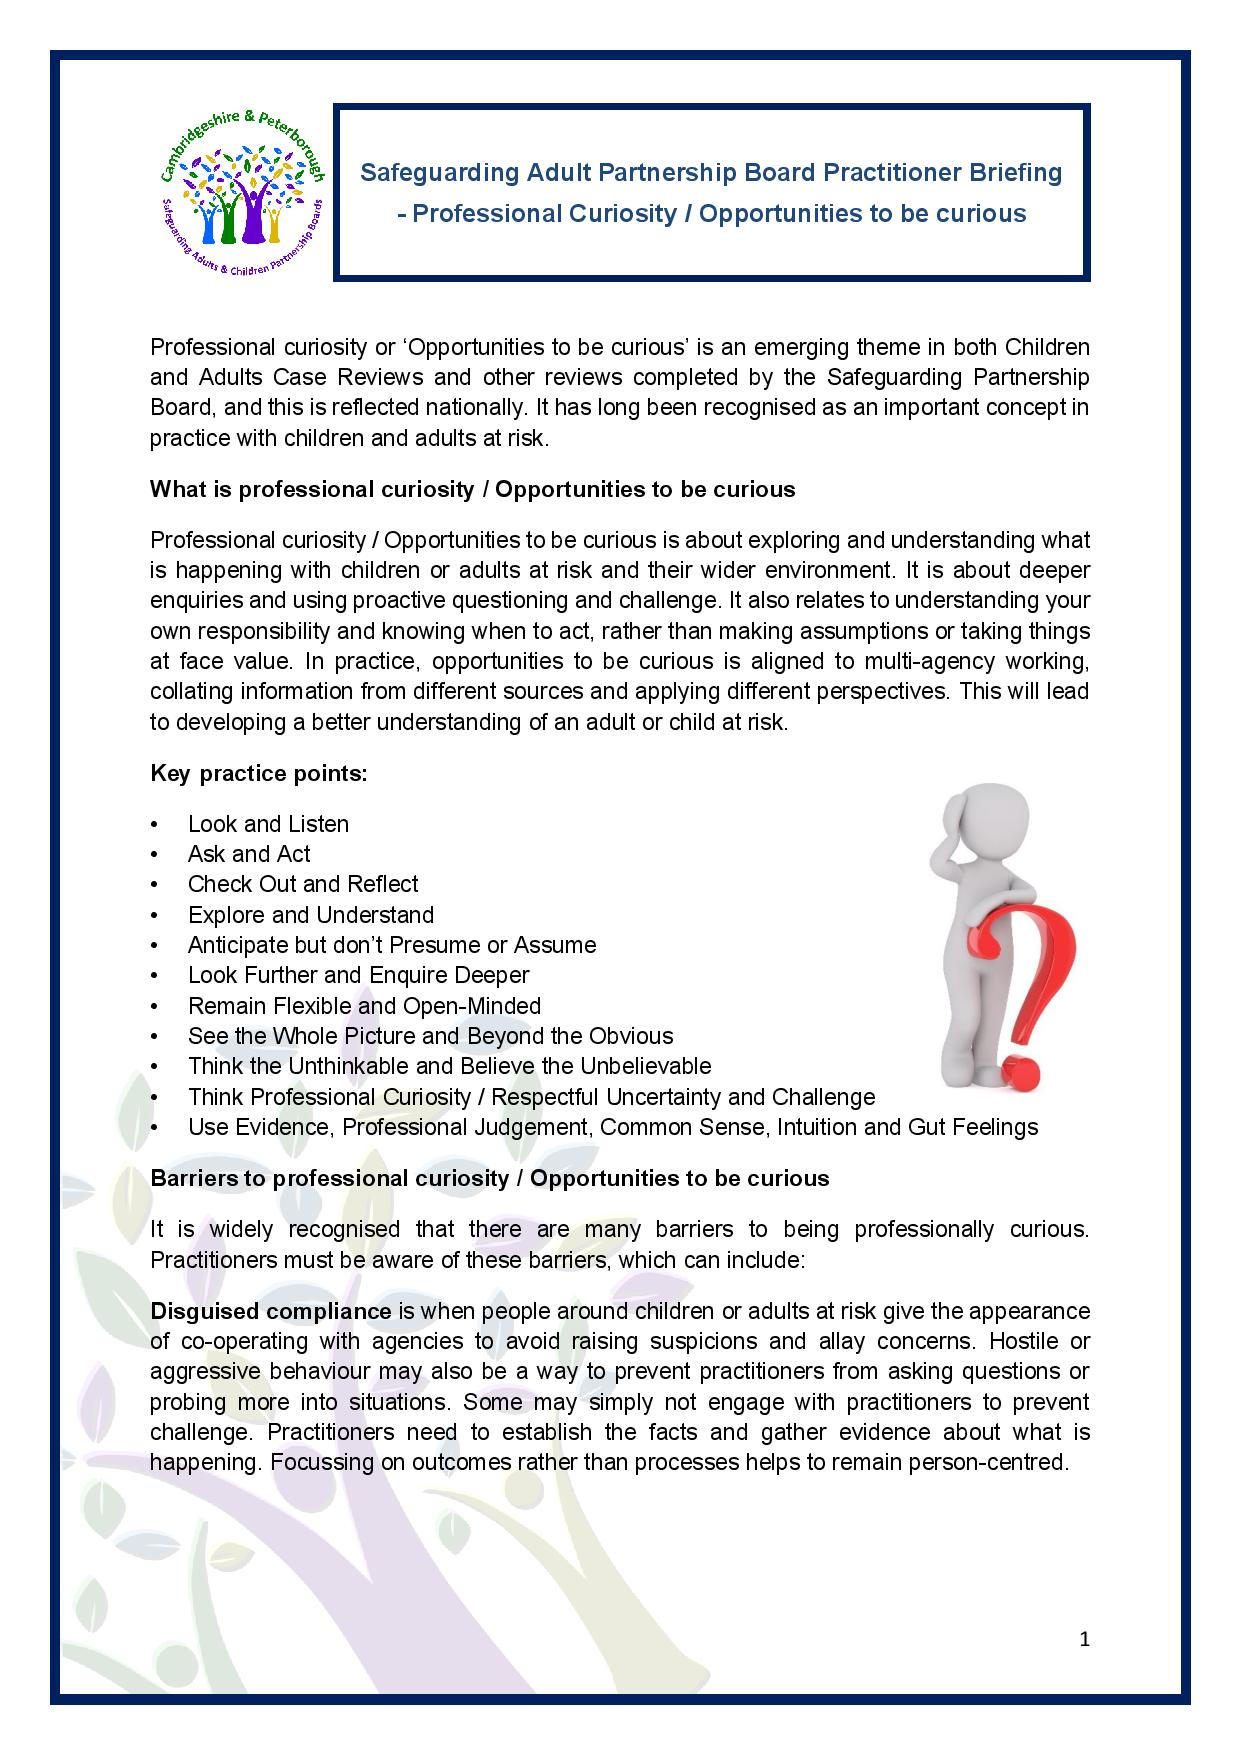 Professional Curiosity / Opportunities To Be Curious Briefing